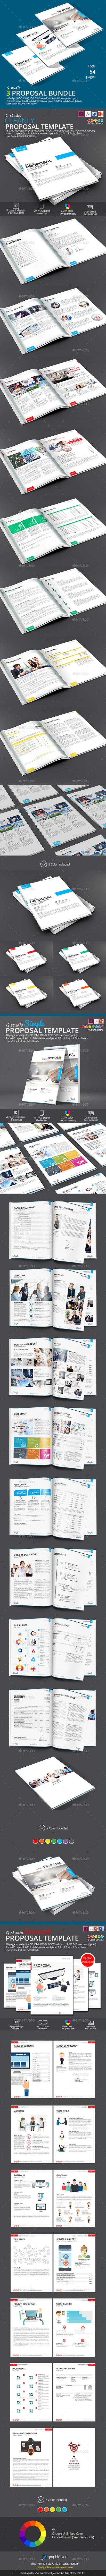 3 Proposal Bundle Template - Proposals & Invoices Stationery